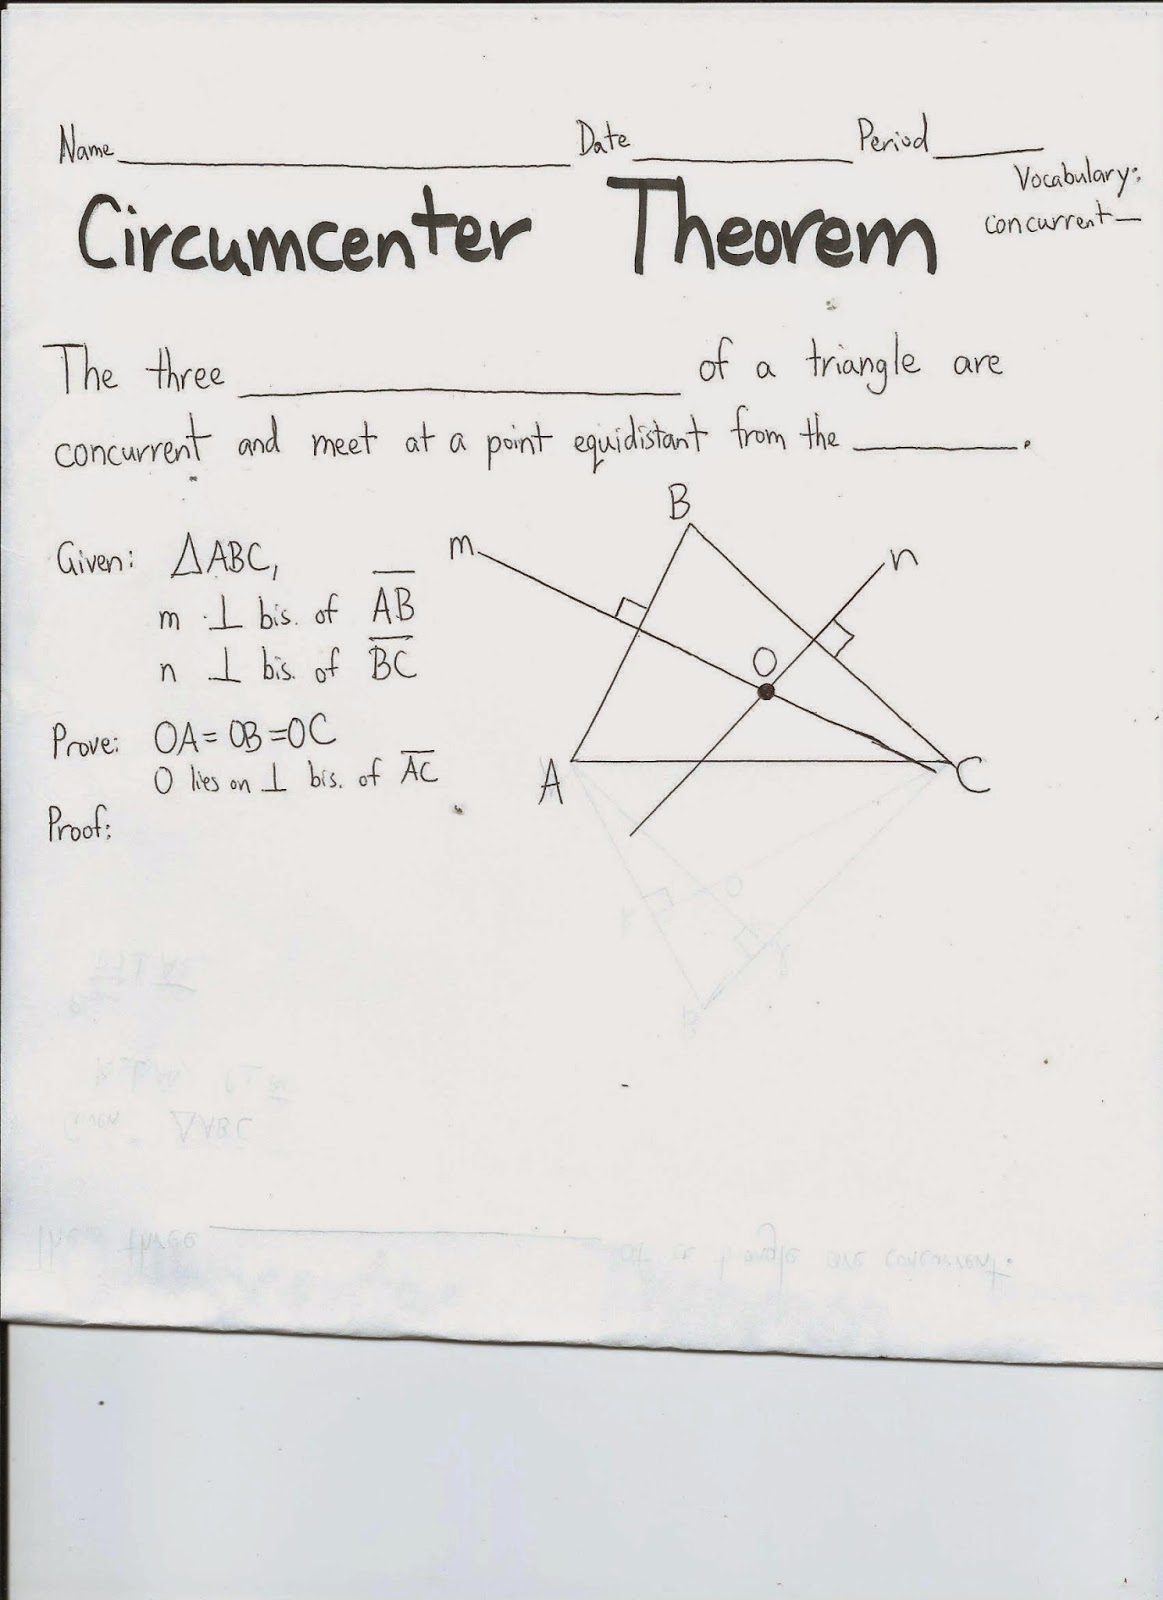 Worksheet On Triangle Congruence Postulates